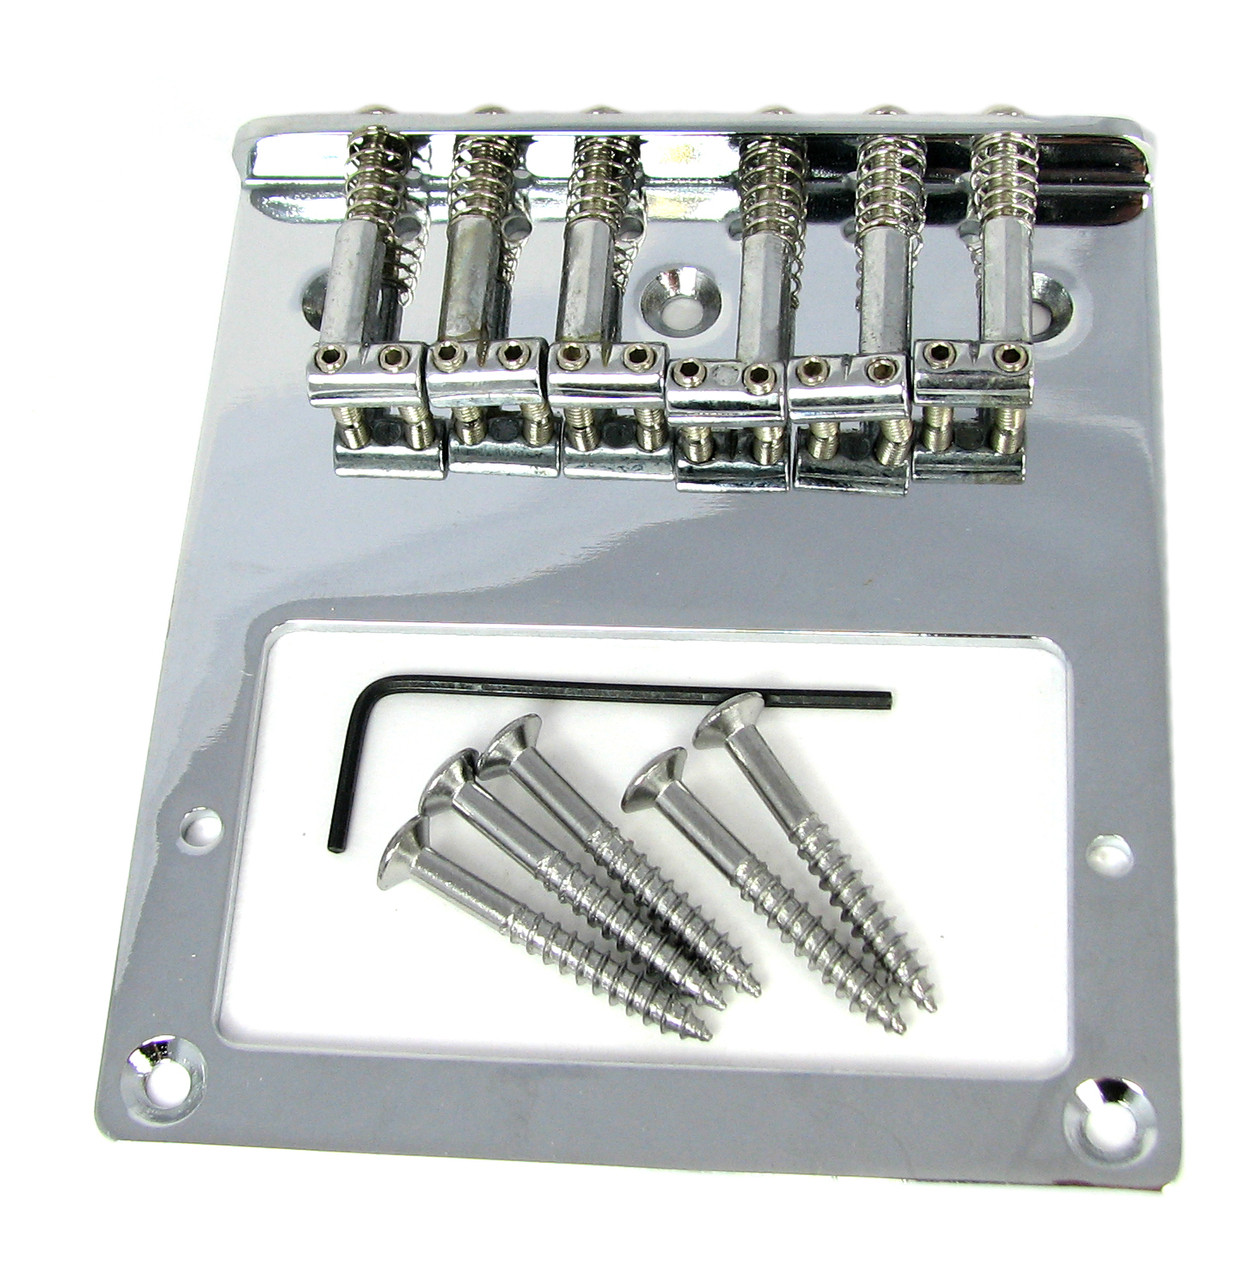 telecaster tm style top loading chrome electric guitar bridge plate for humbuckers c b. Black Bedroom Furniture Sets. Home Design Ideas